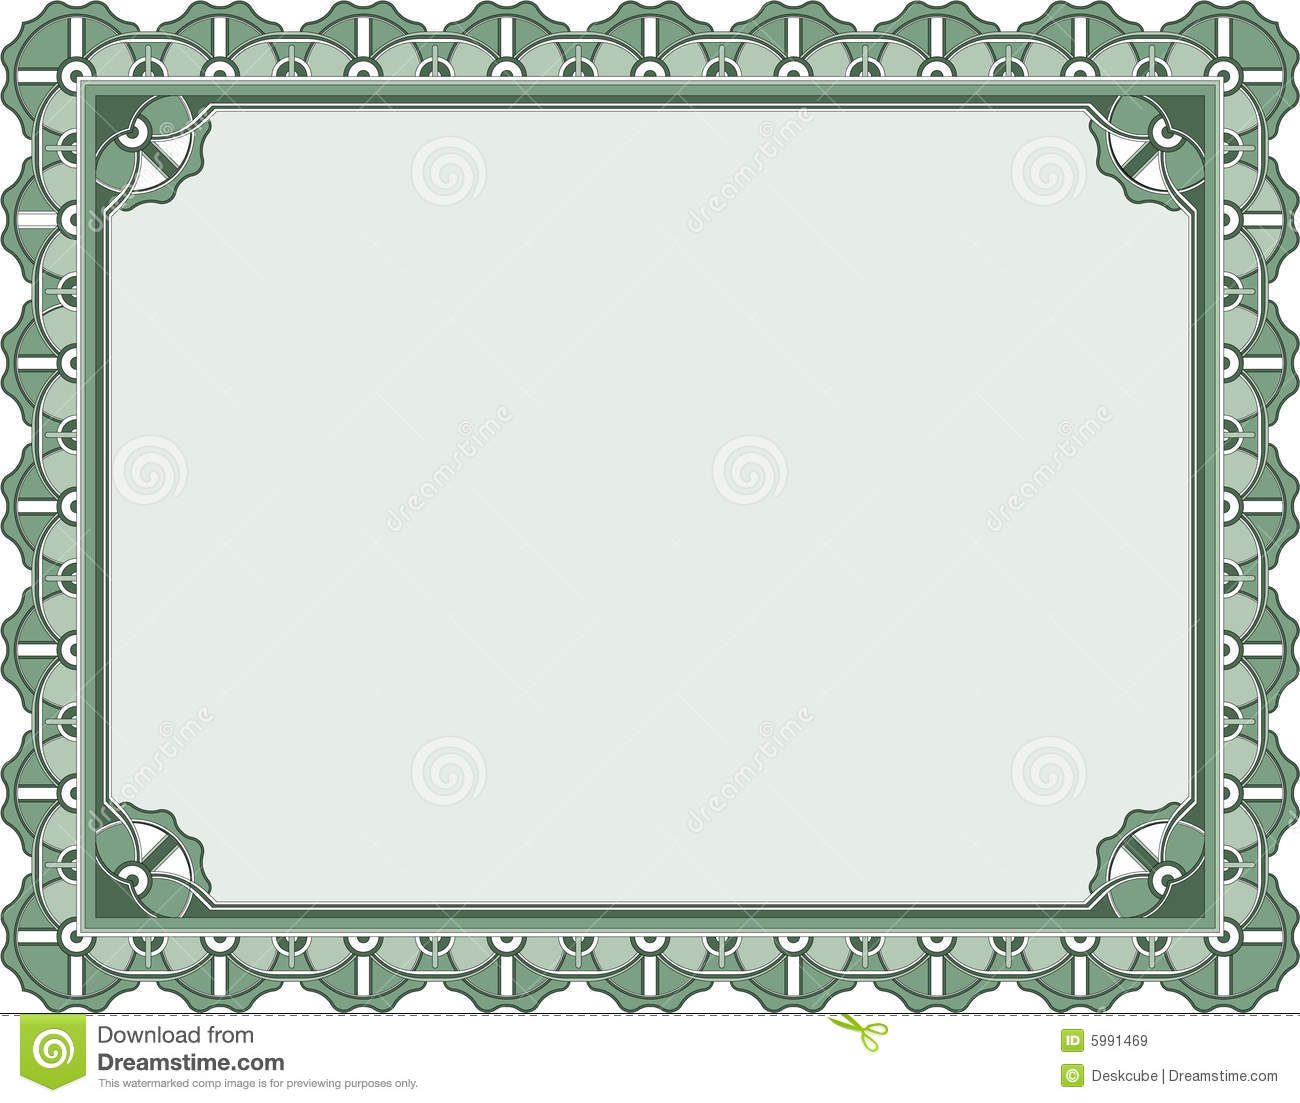 award certificate template royalty stock images image  award certificate template